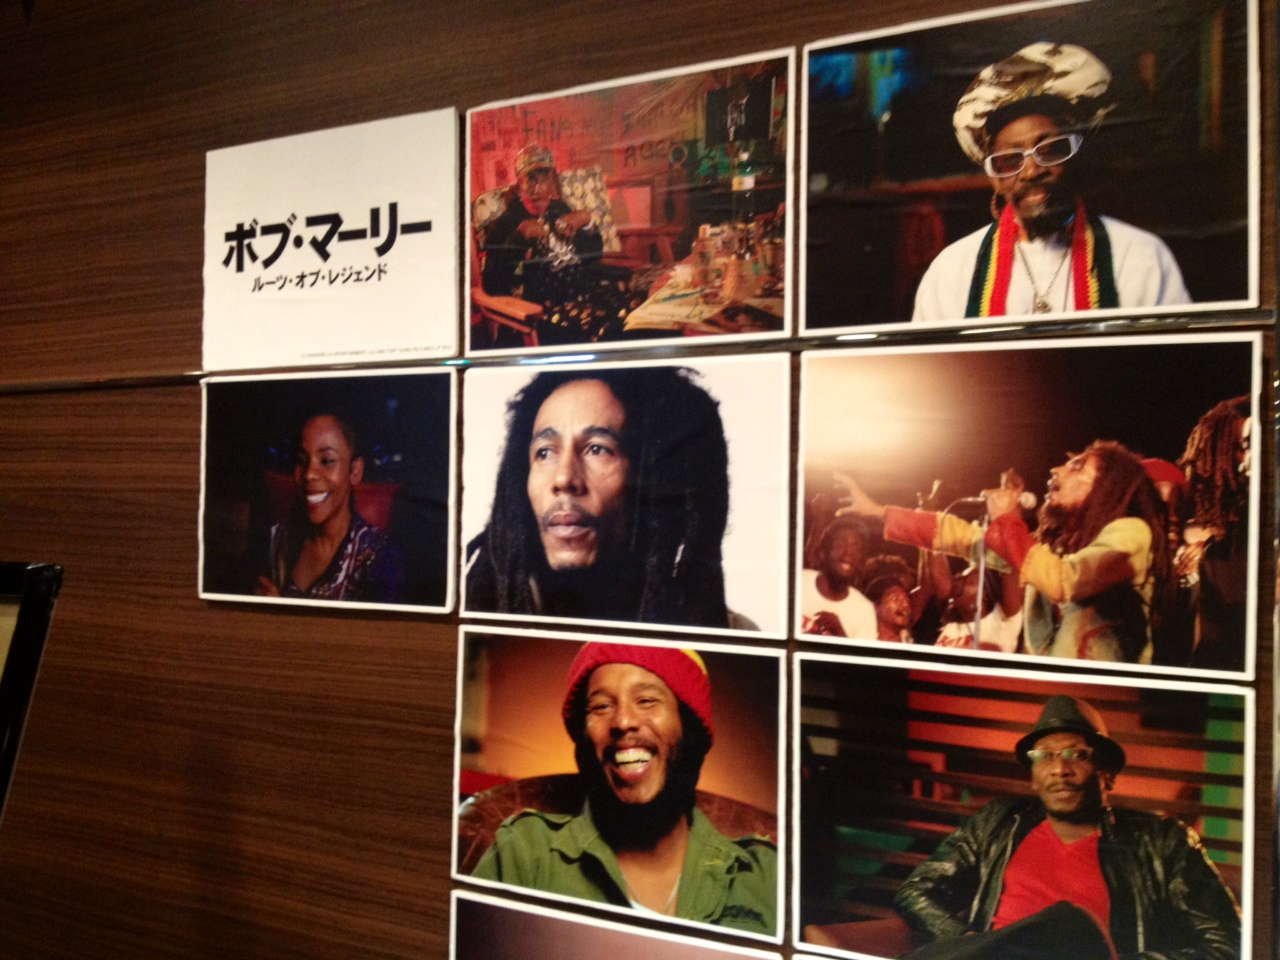 MARLEY-ROOTS OF LEGEND